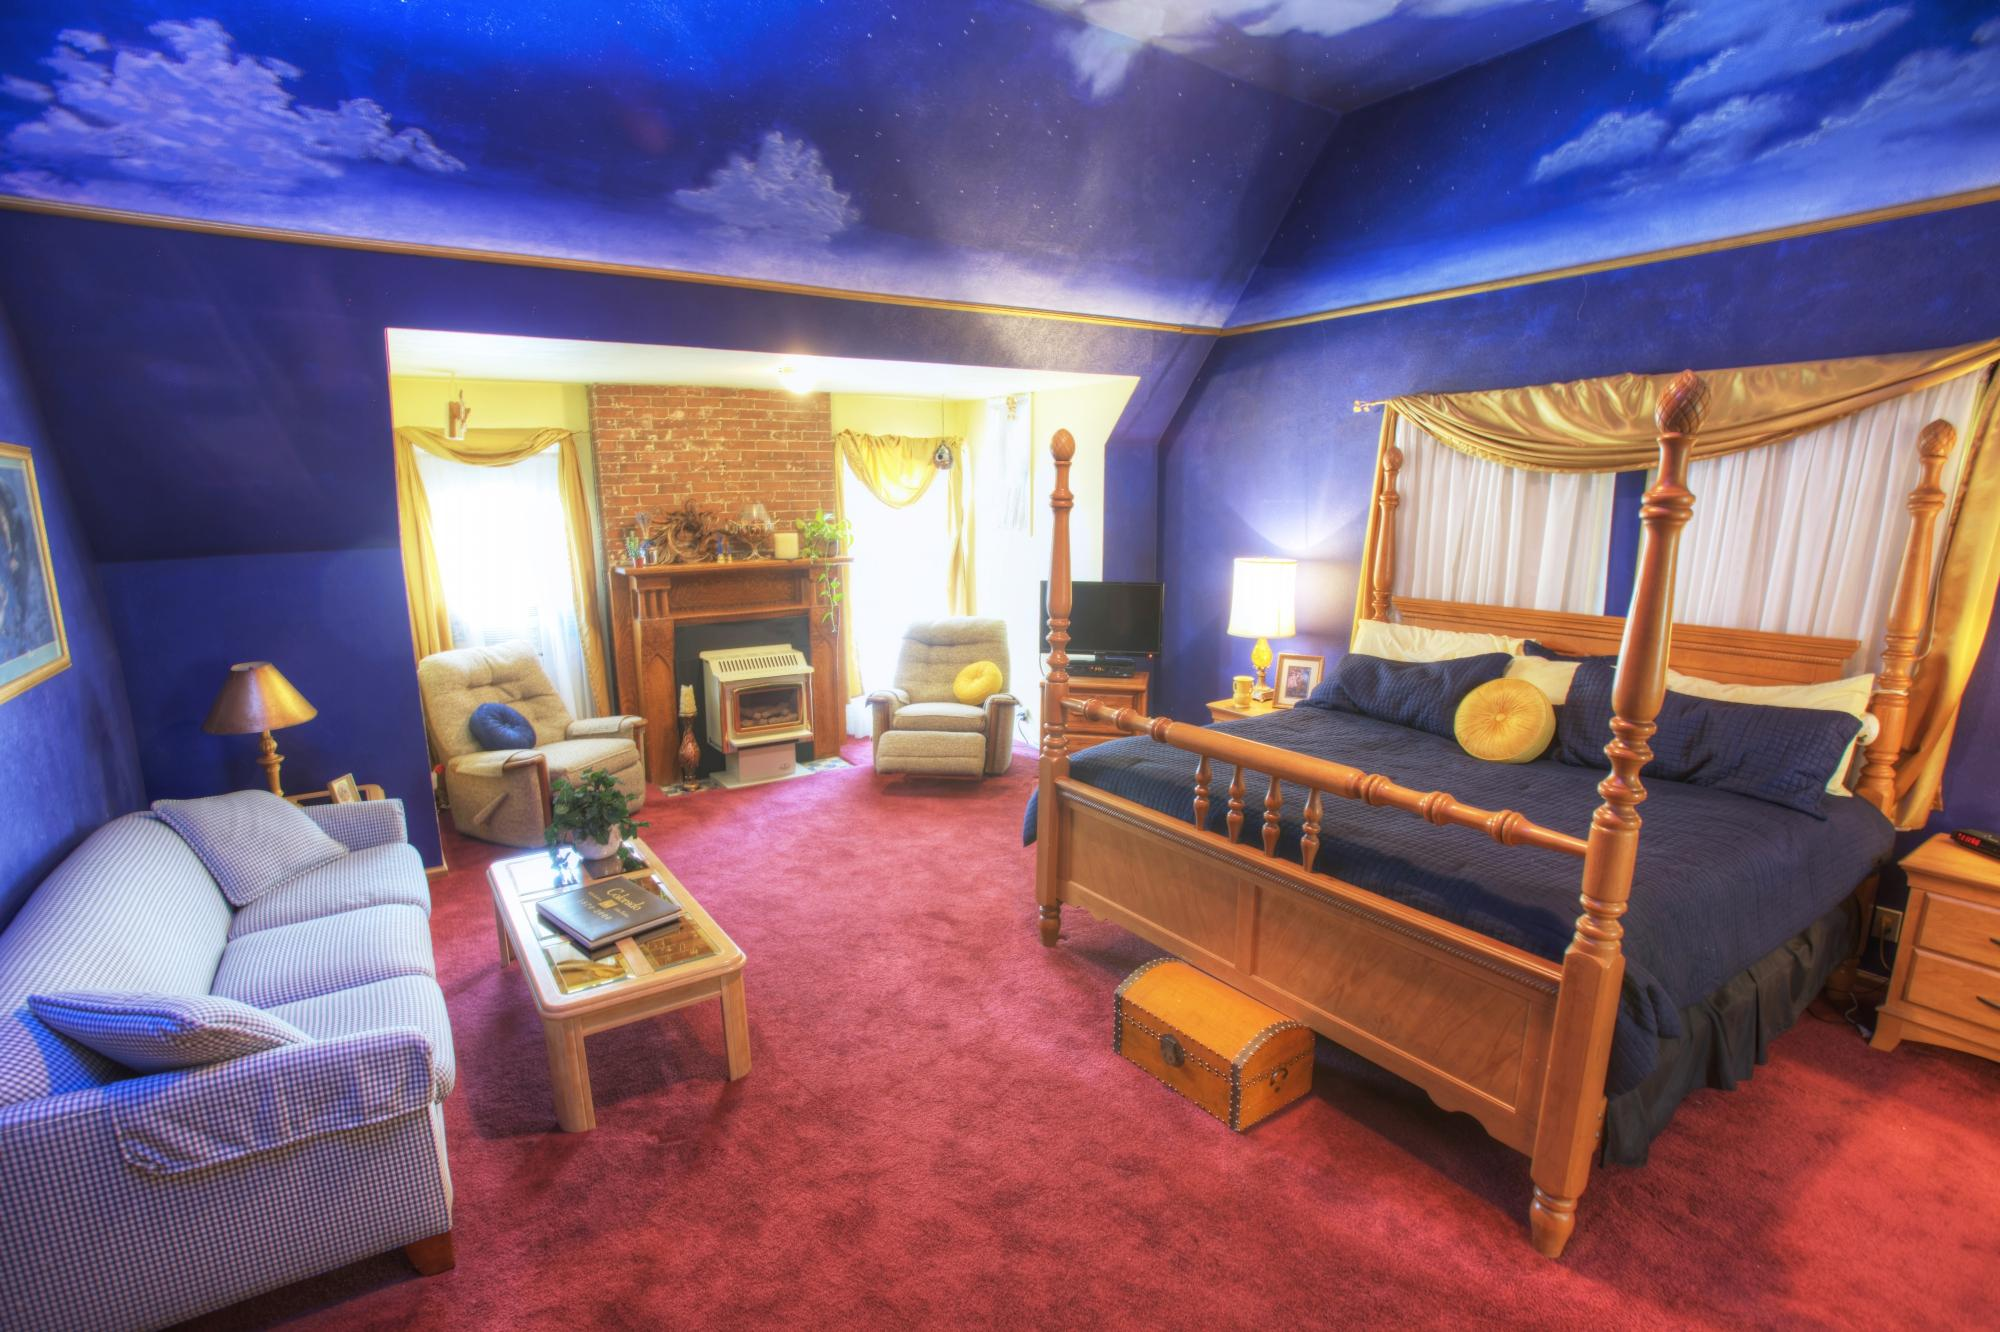 Adagio Hotel Room with Purple painted walls and white clouds.